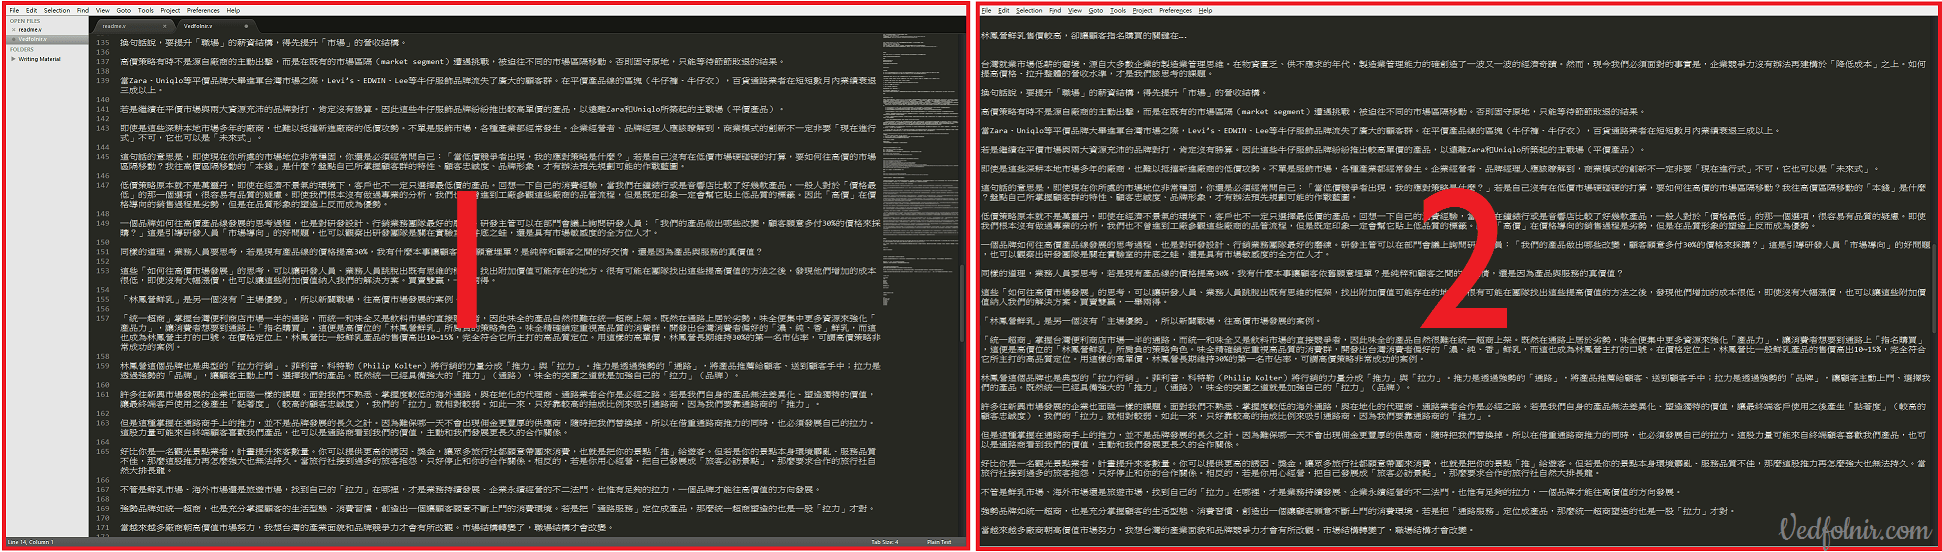 Sublime Text F11 Shift Full Screen Different Sublime Text 程式與文件編輯器/電腦軟體推薦